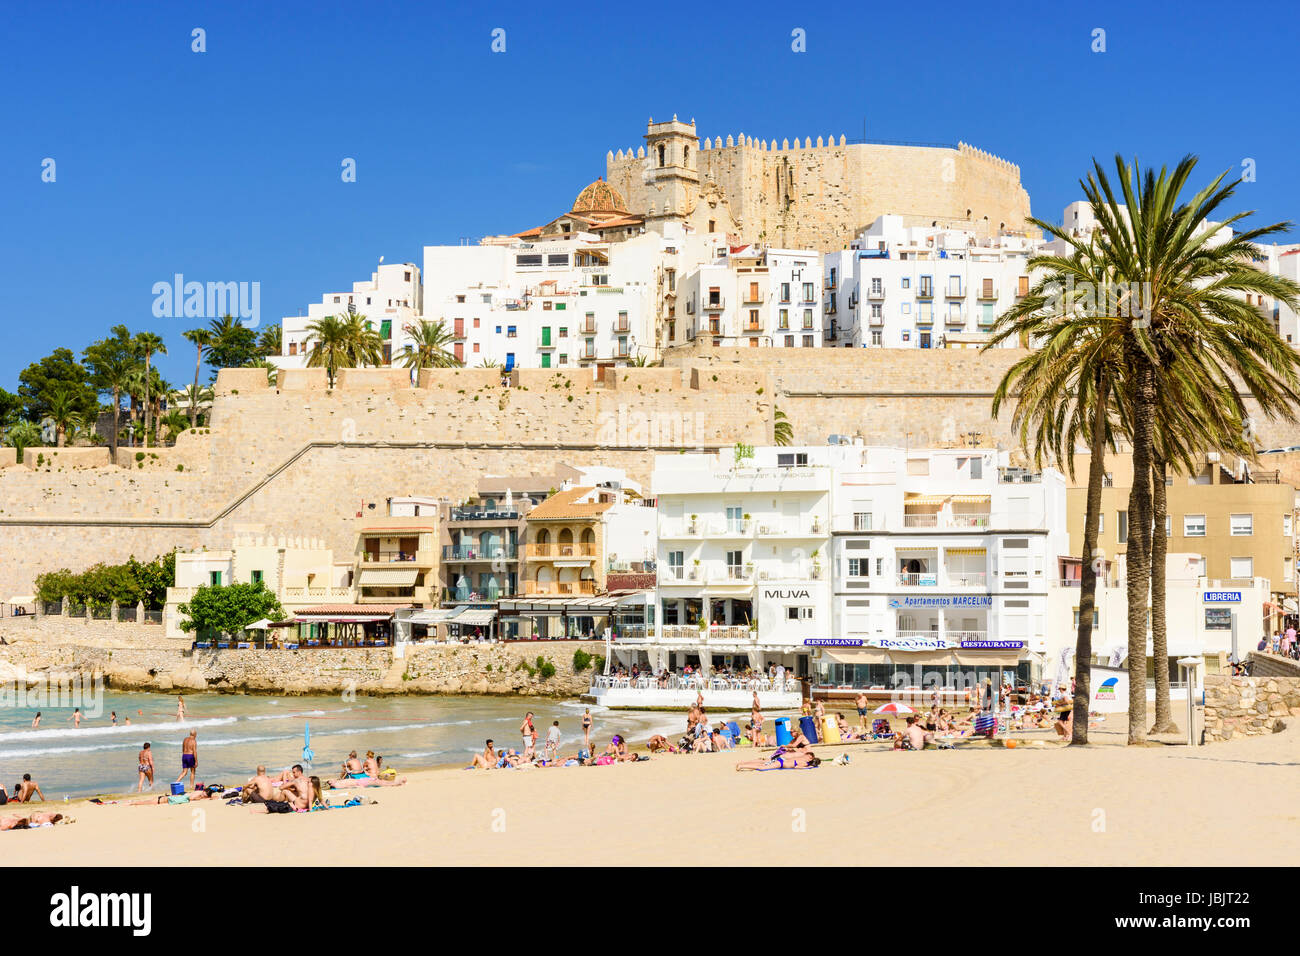 Peniscola's Papa Luna Castle and old town overlooking a people on Playa Norte beach, Peniscola, Spain - Stock Image